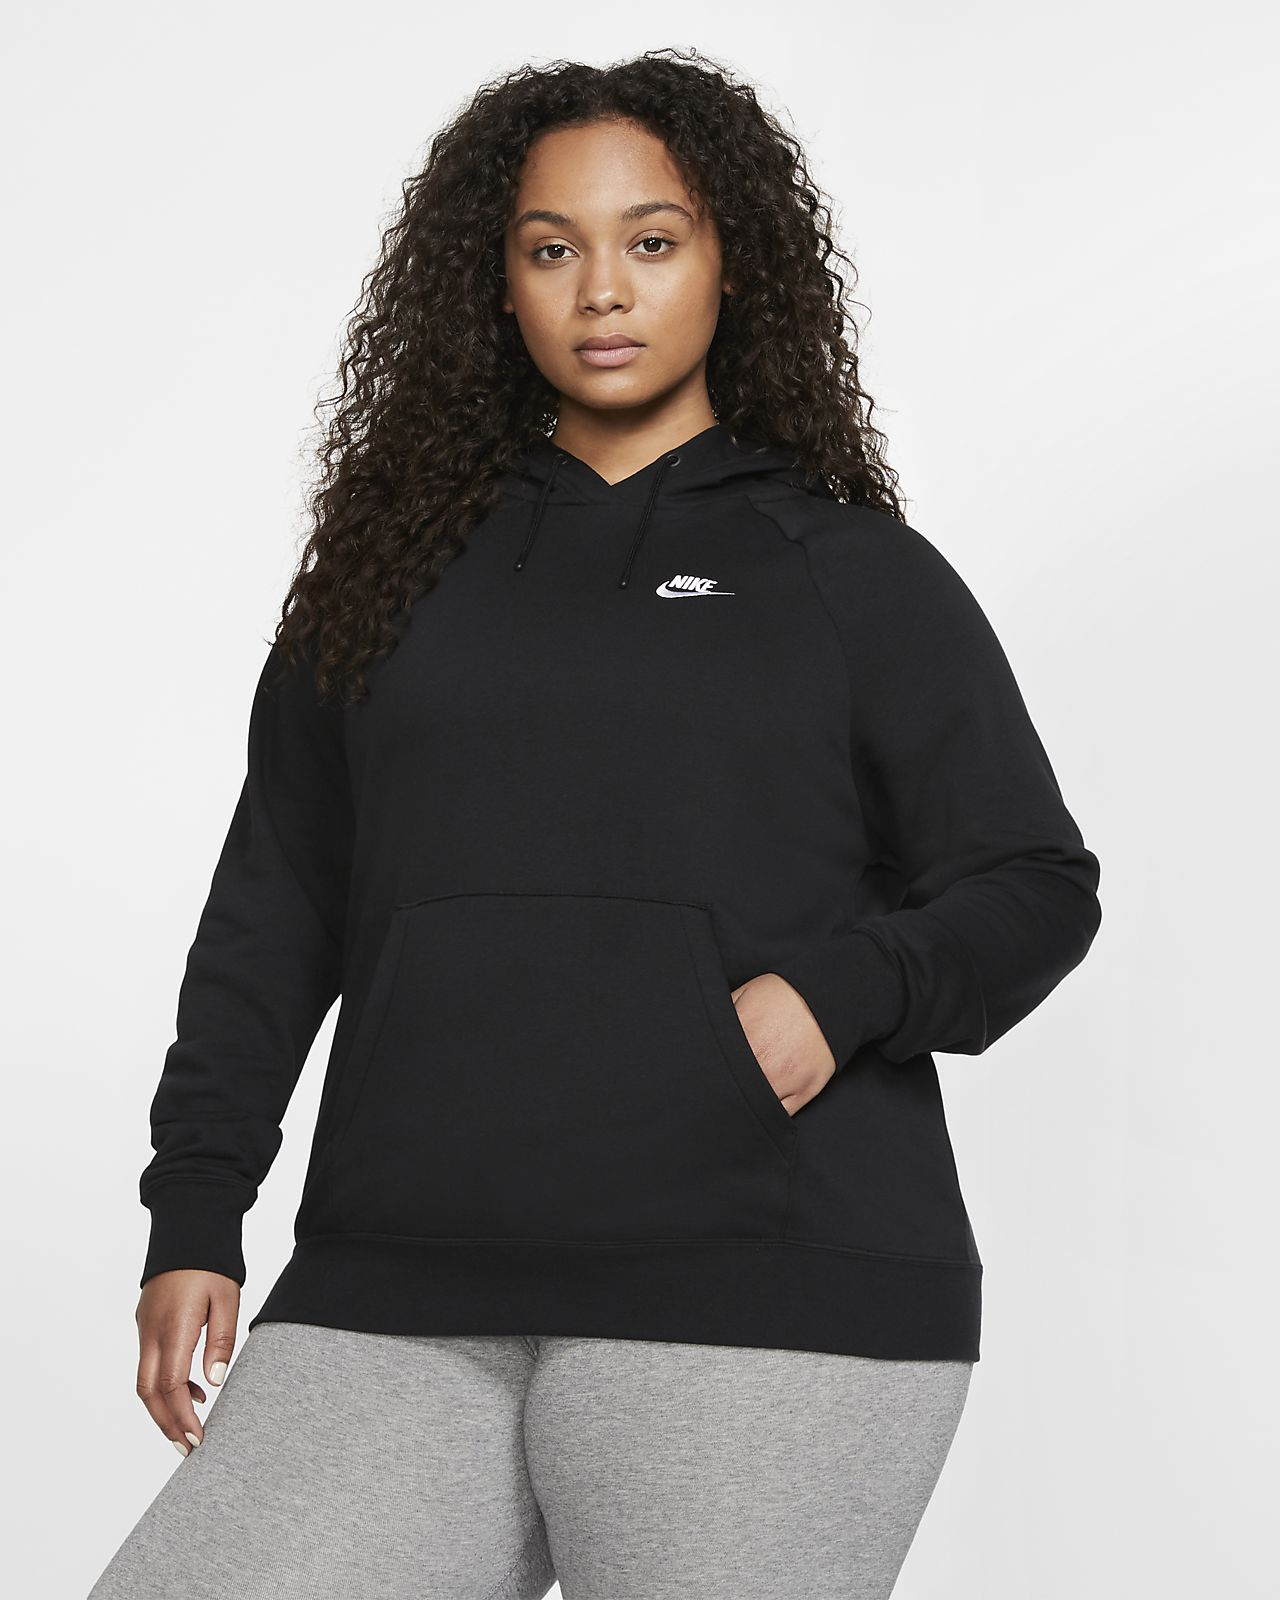 Nike Sportswear Essential Women's Fleece Pullover Hoodie (Plus Size)